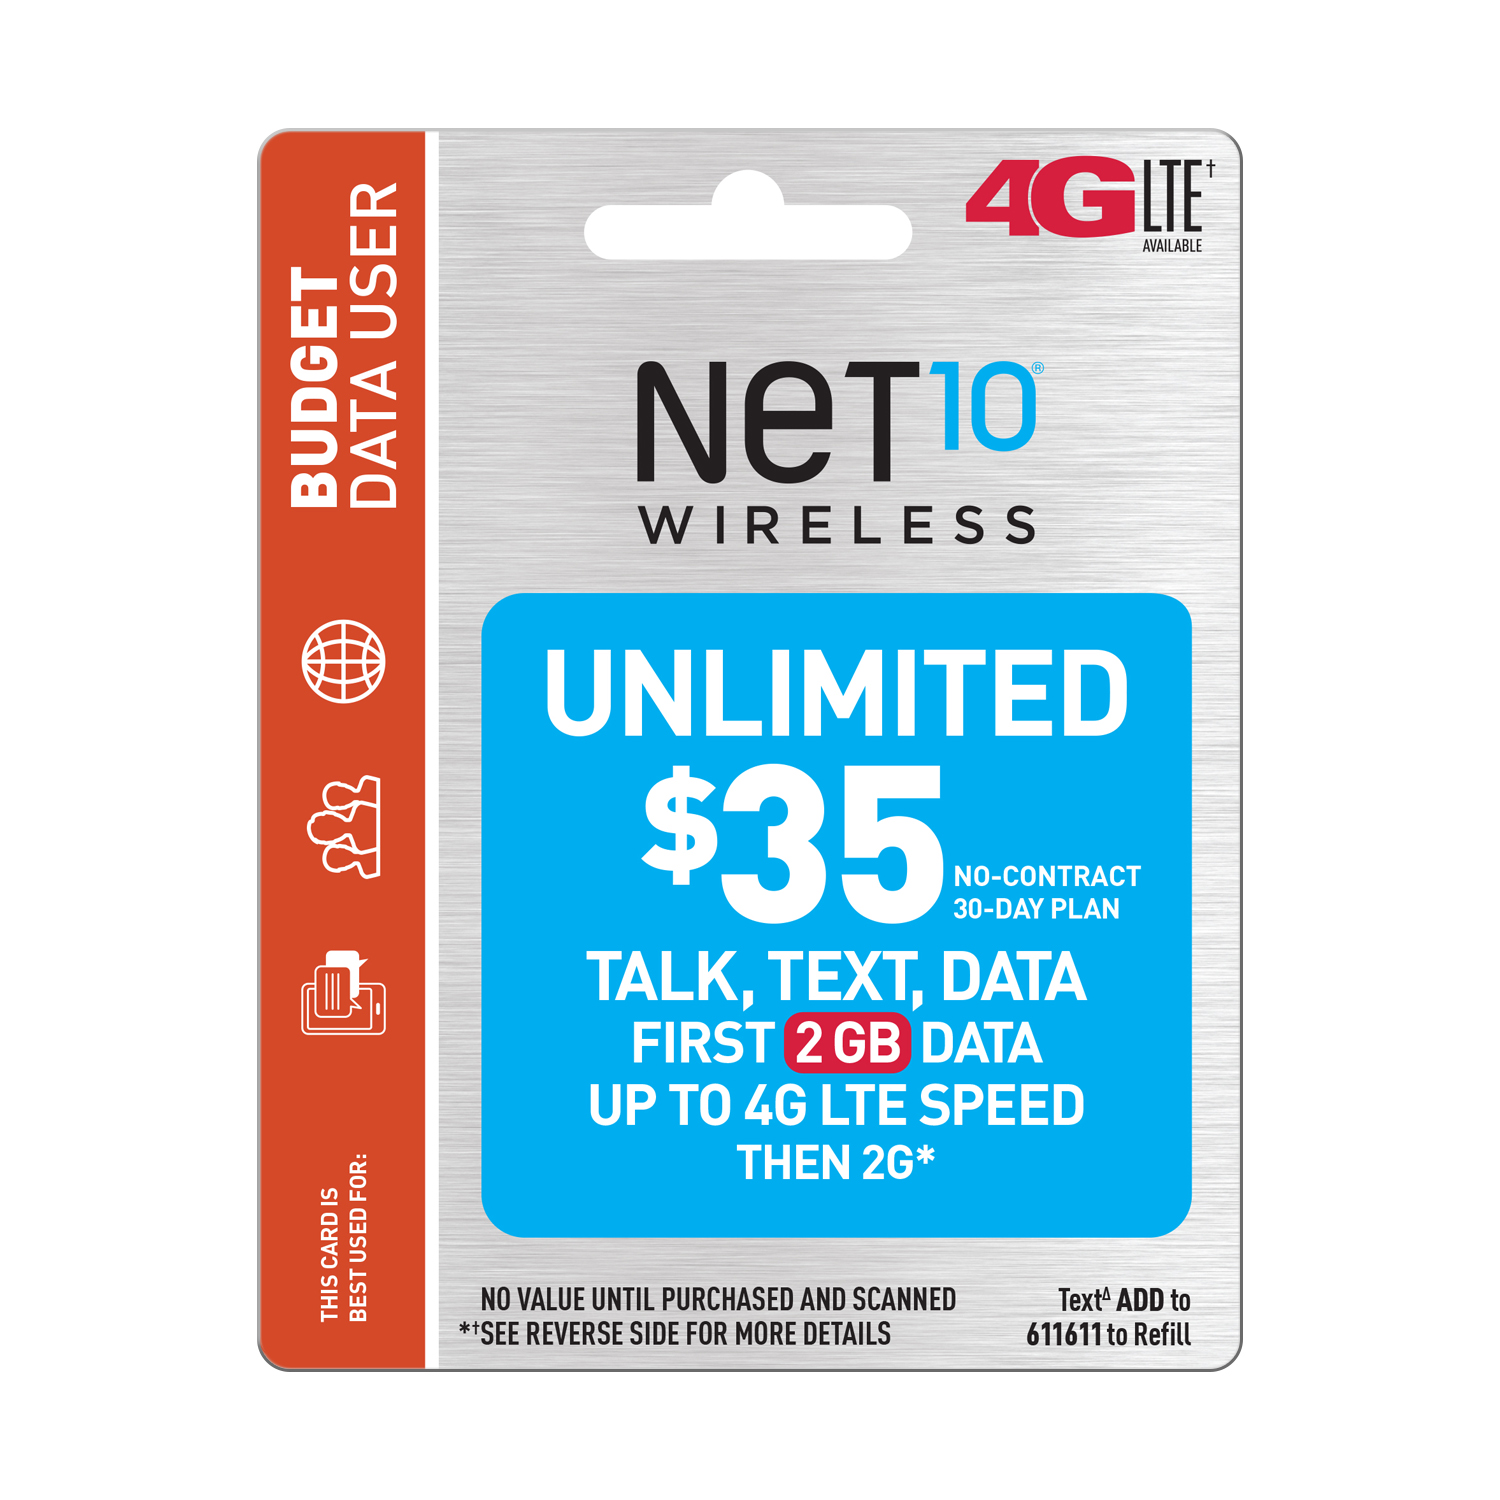 Net10 $35 Unlimited 30 Day Plan (2GB of data at high speed, then 2G*) (Email Delivery) Double Data Promo Available***